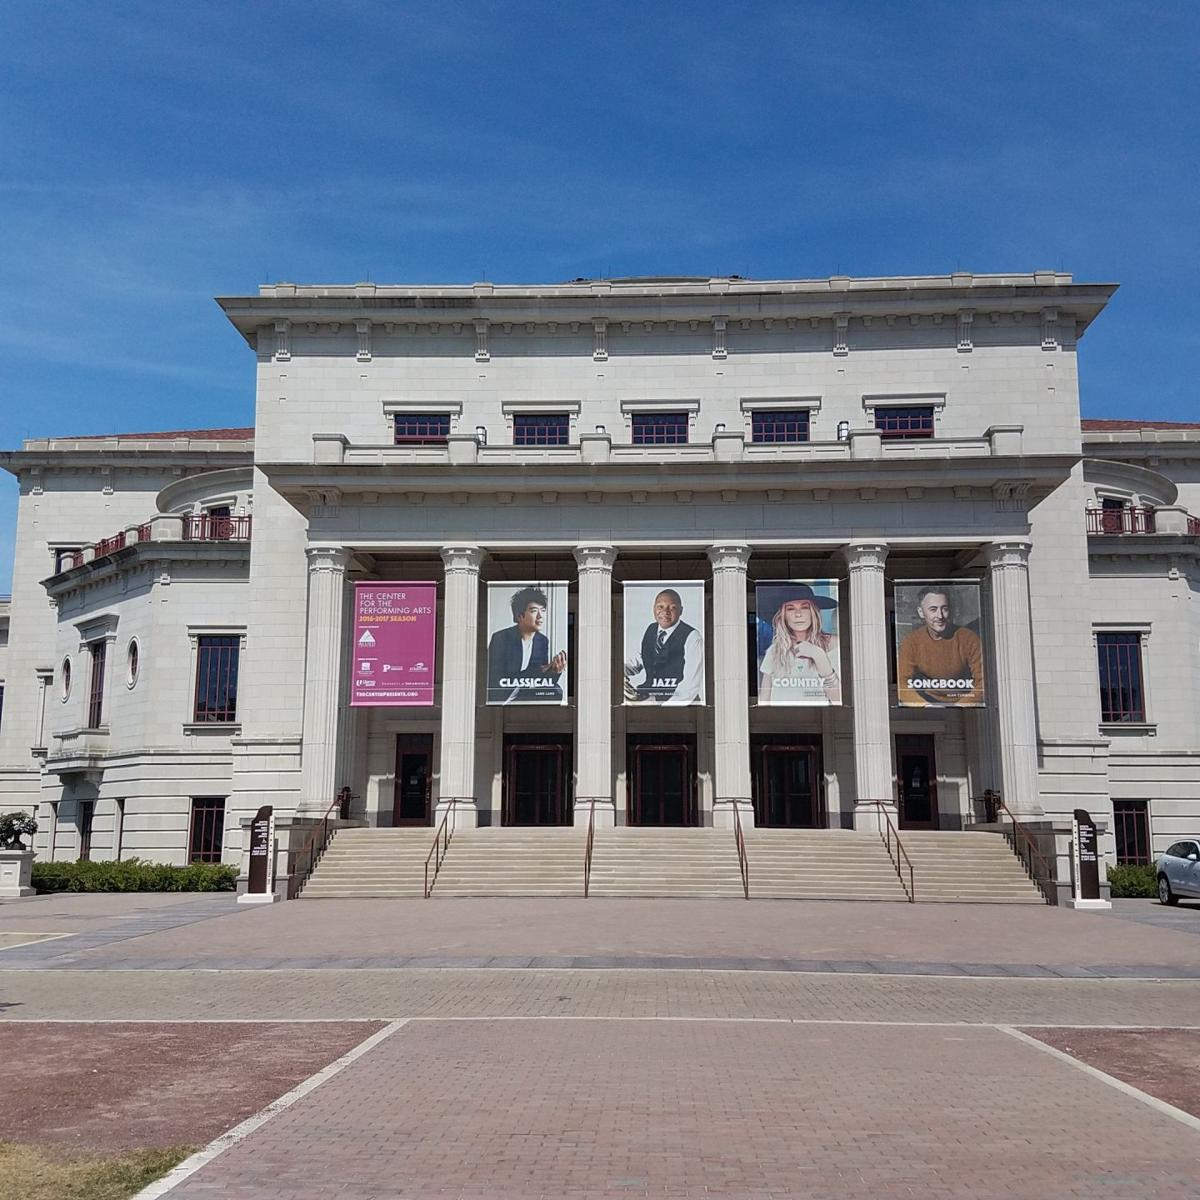 Palladium exterior at the Center for the Performing Arts